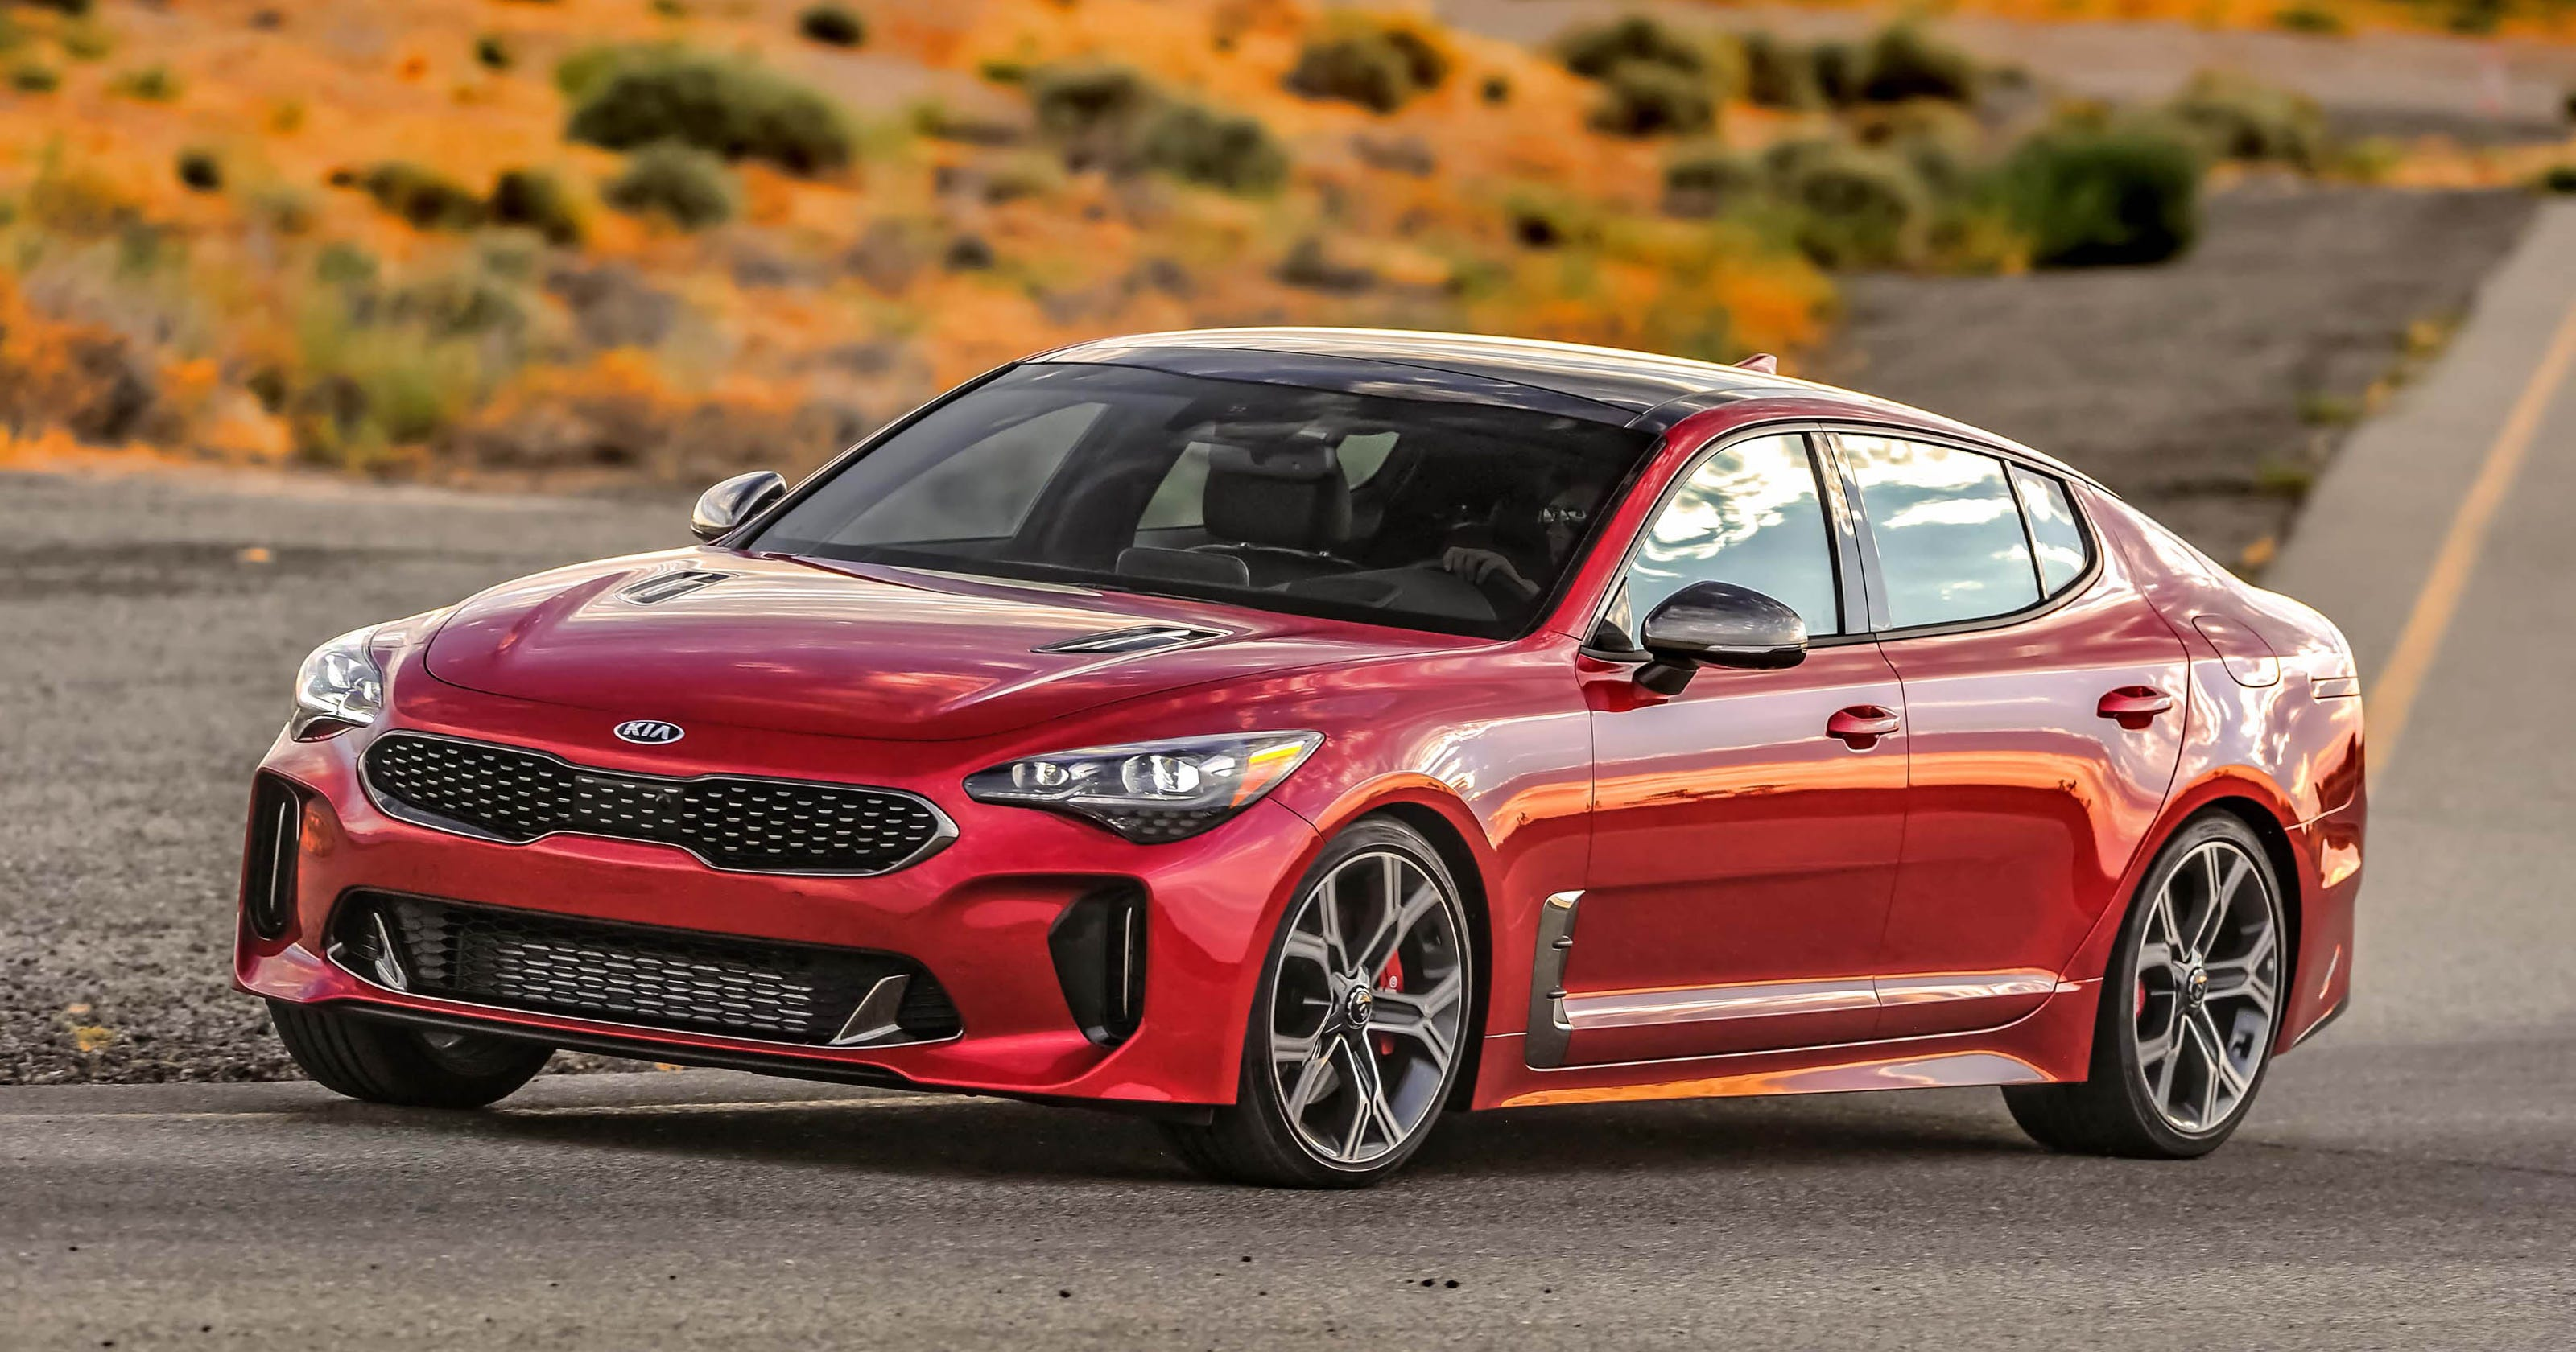 Kia Bill Pay >> 2018 Kia Stinger car review: Sporty sedan takes Kia to a ...